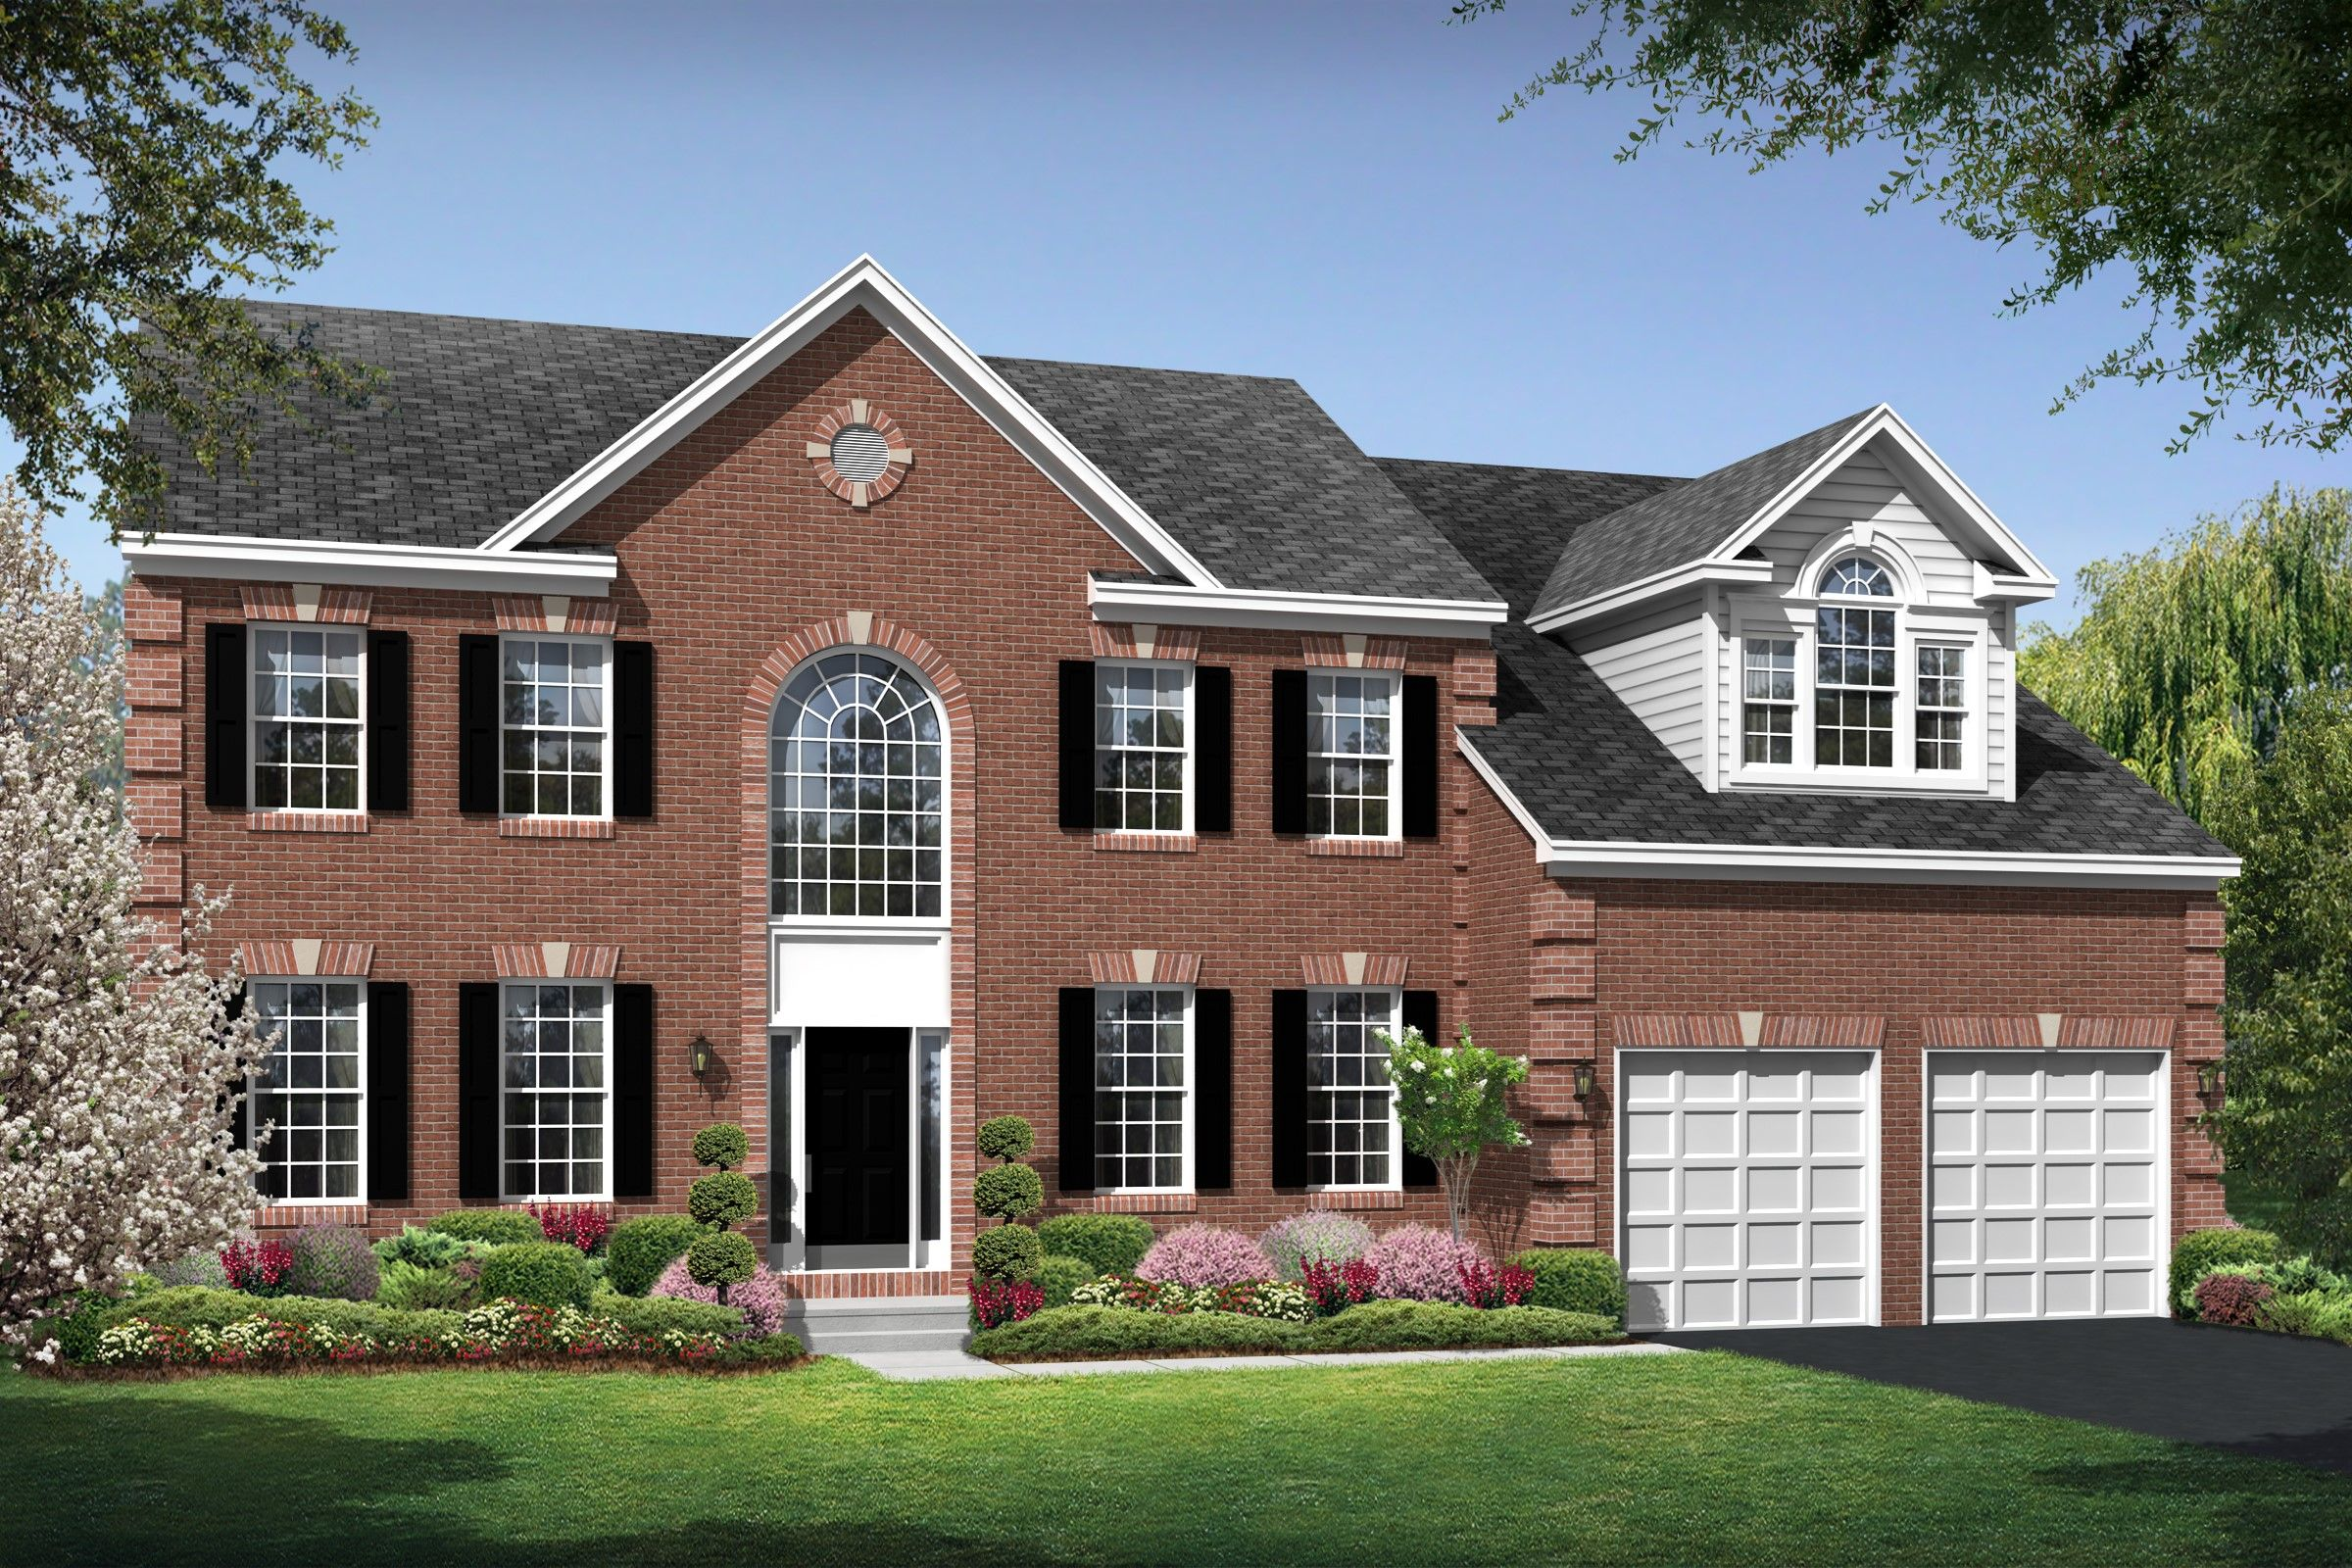 Single Family for Active at The Reserves At Leeland Station - Colorado 120 Perth Drive Fredericksburg, Virginia 22405 United States